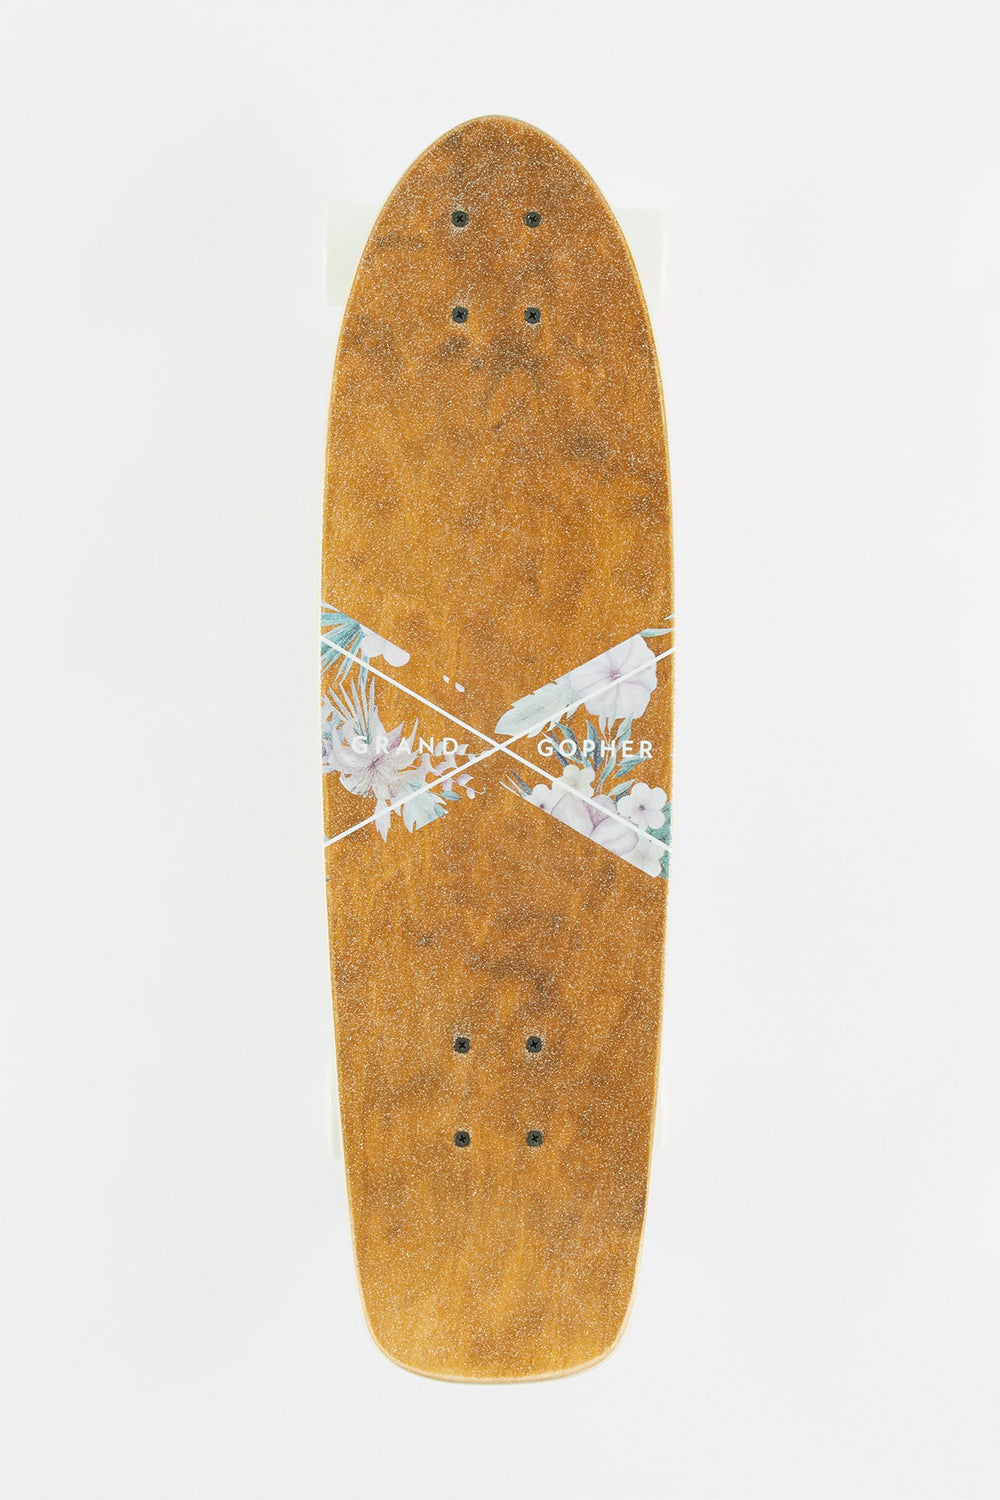 Skateboard Cruiser Hybride Grand Gopher 28